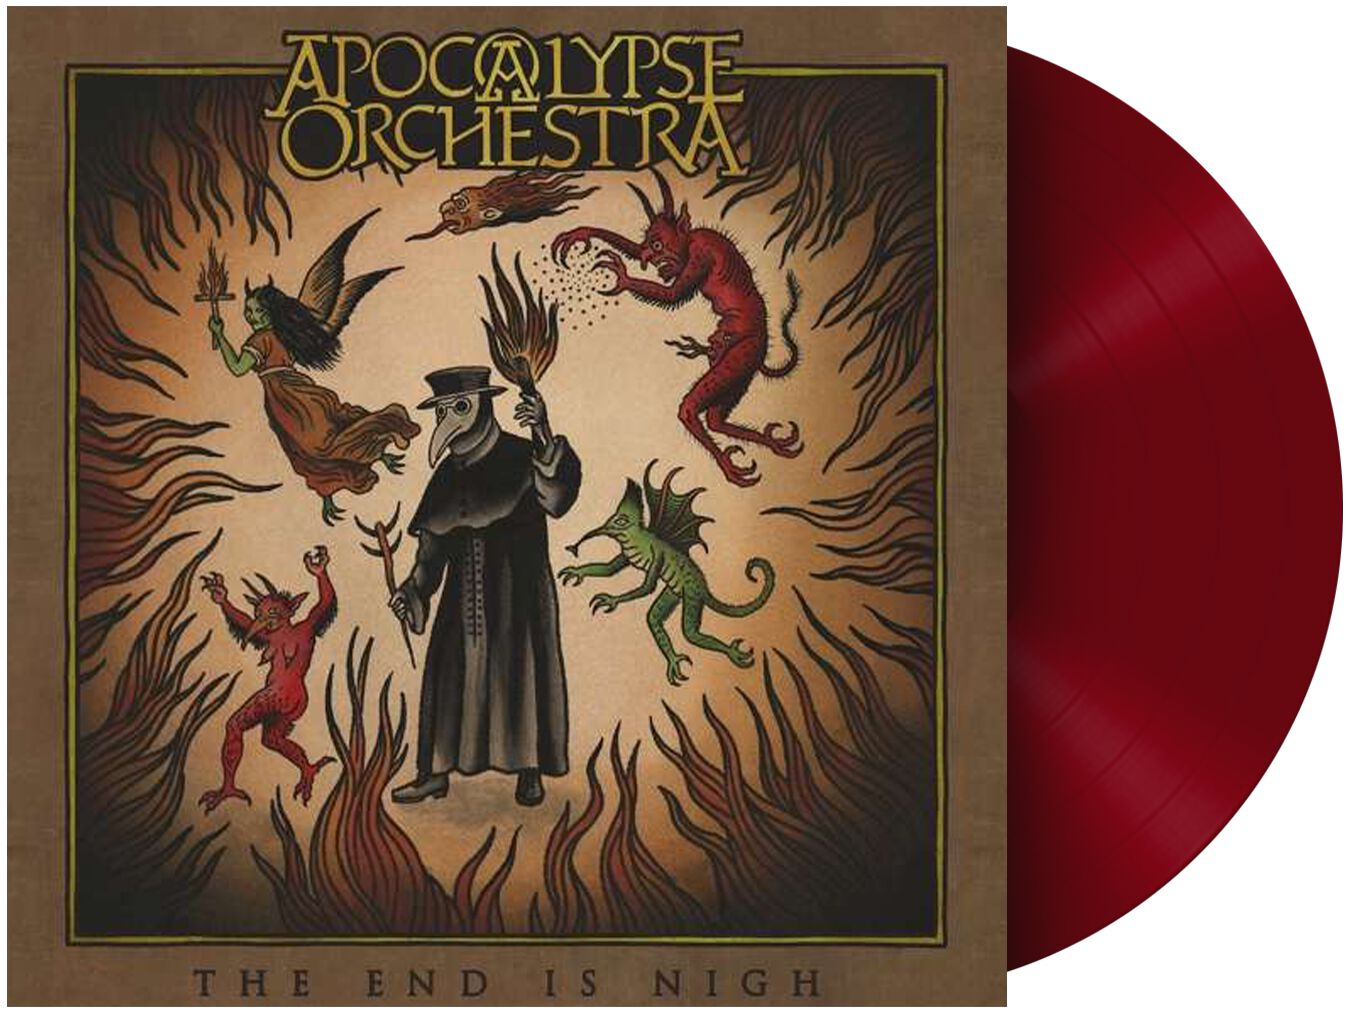 Image of Apocalypse Orchestra The end is nigh 2-LP rot